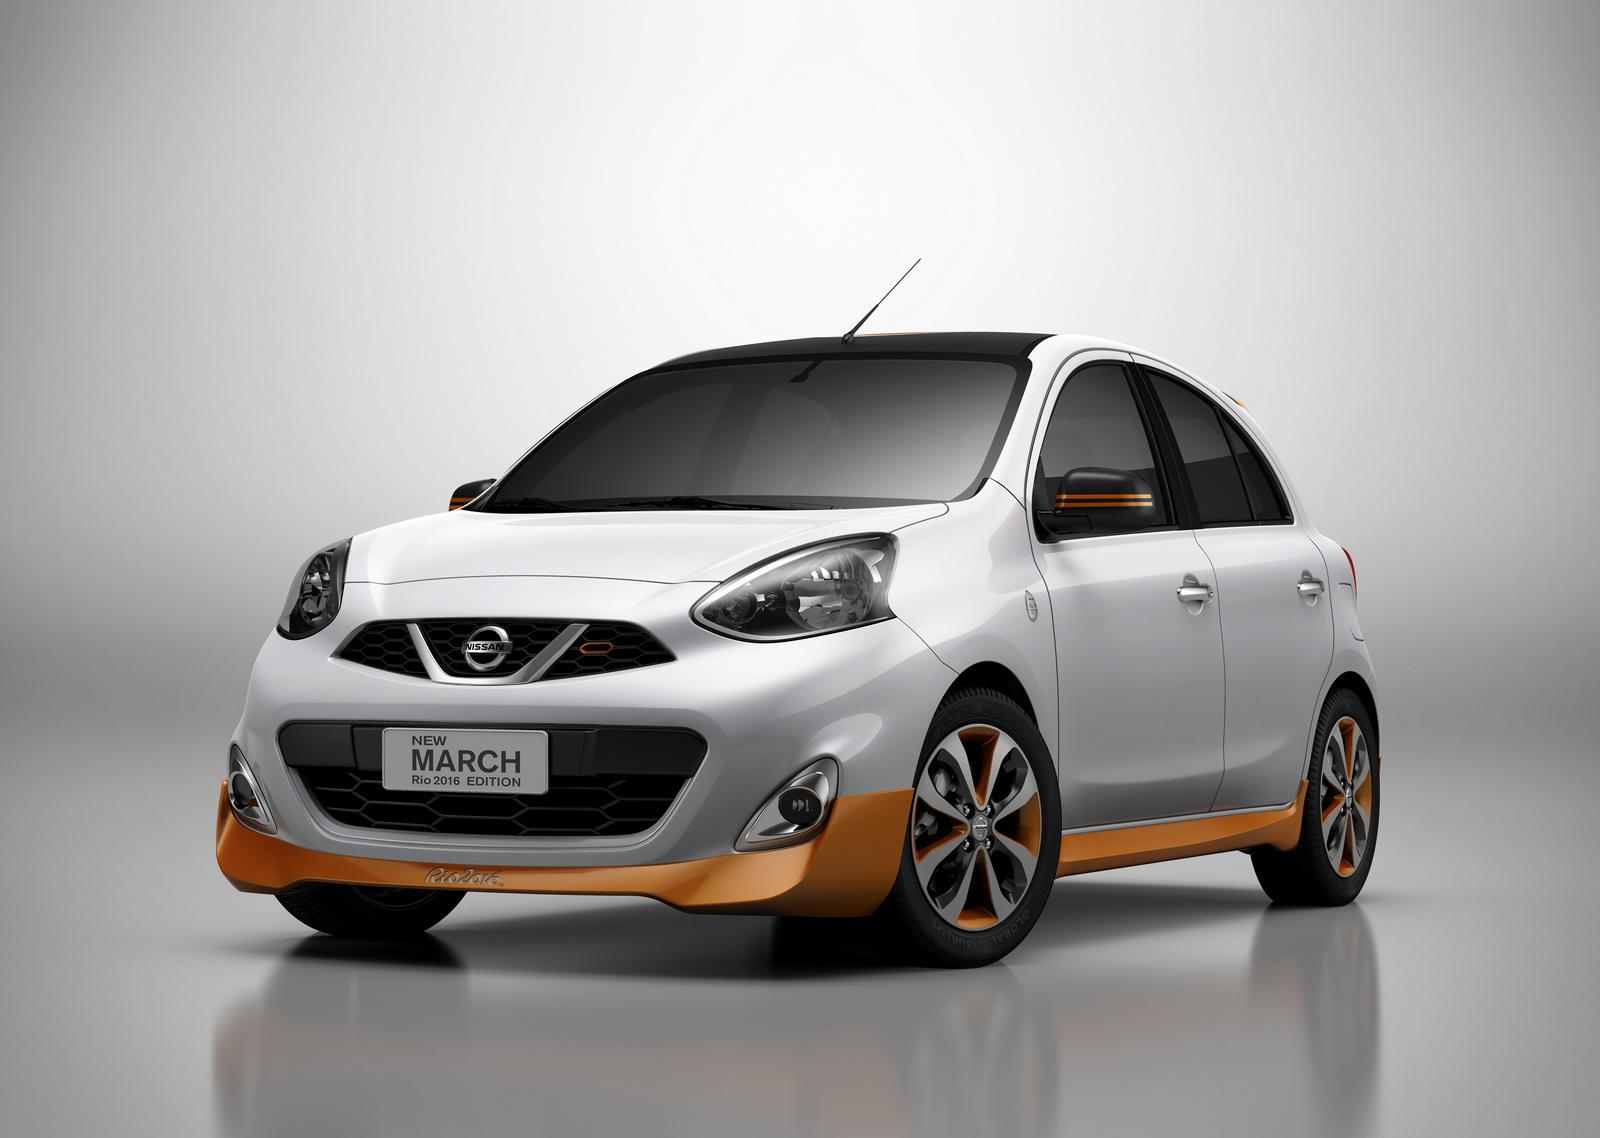 Nissan March Rio 2016 Edition Is a Micra with a Gold Body Kit